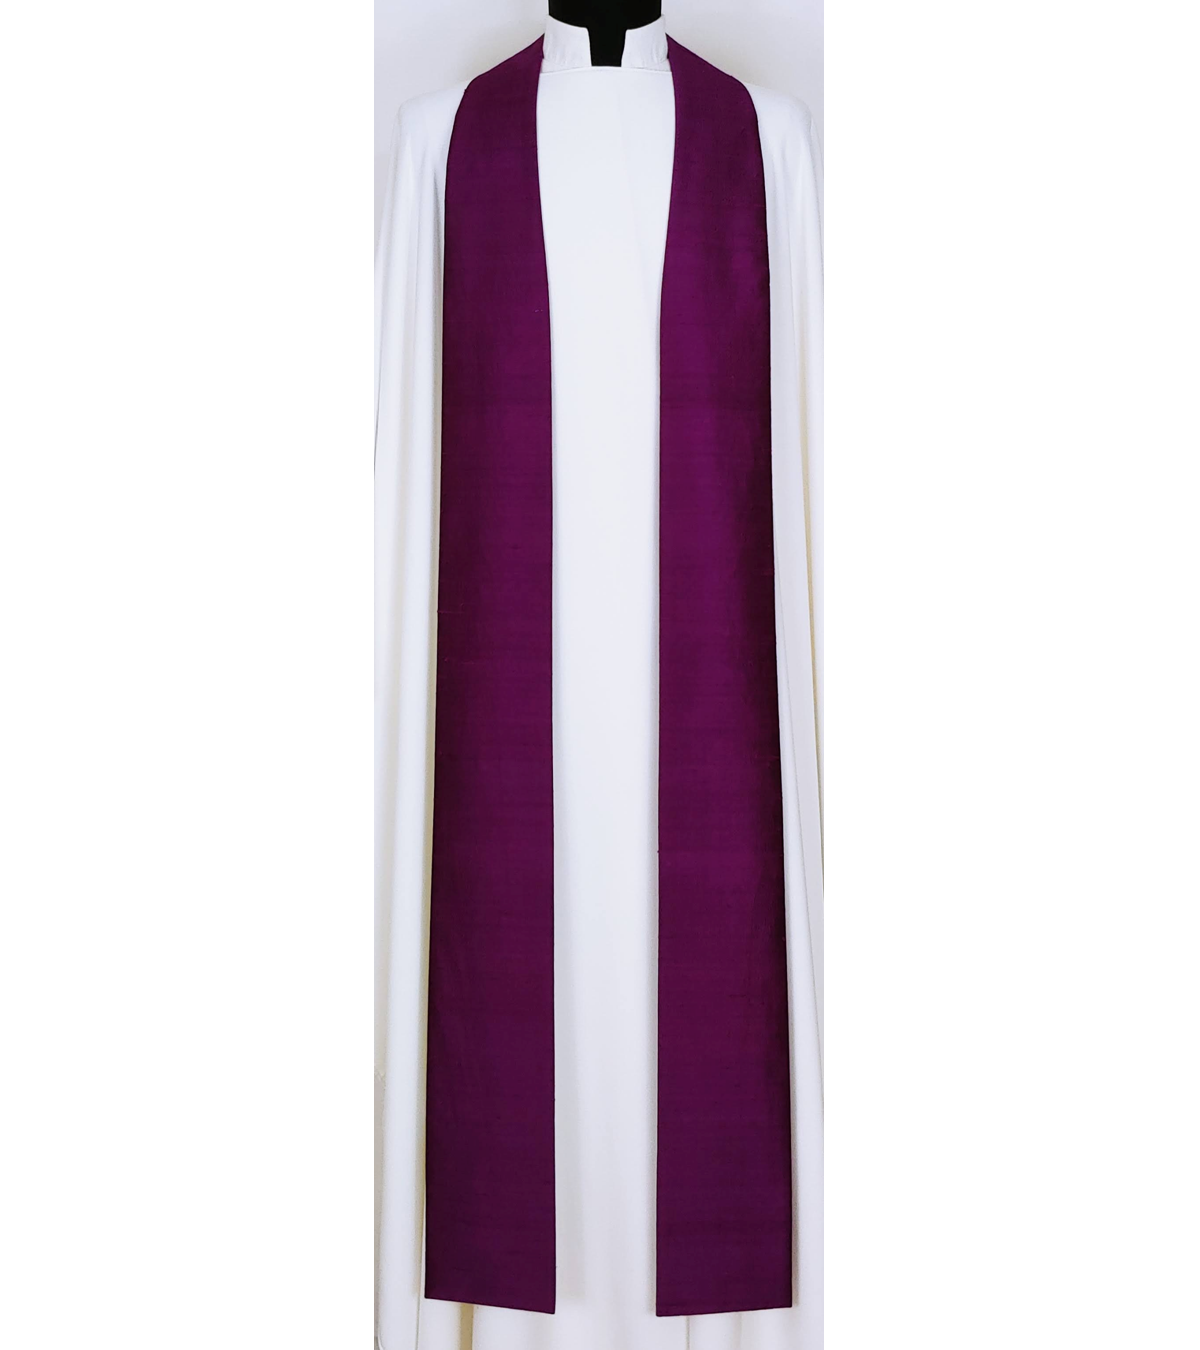 Simply Silk: Plain Purple Clergy Stole -- Keep it Simple, or Add Your Own Design!